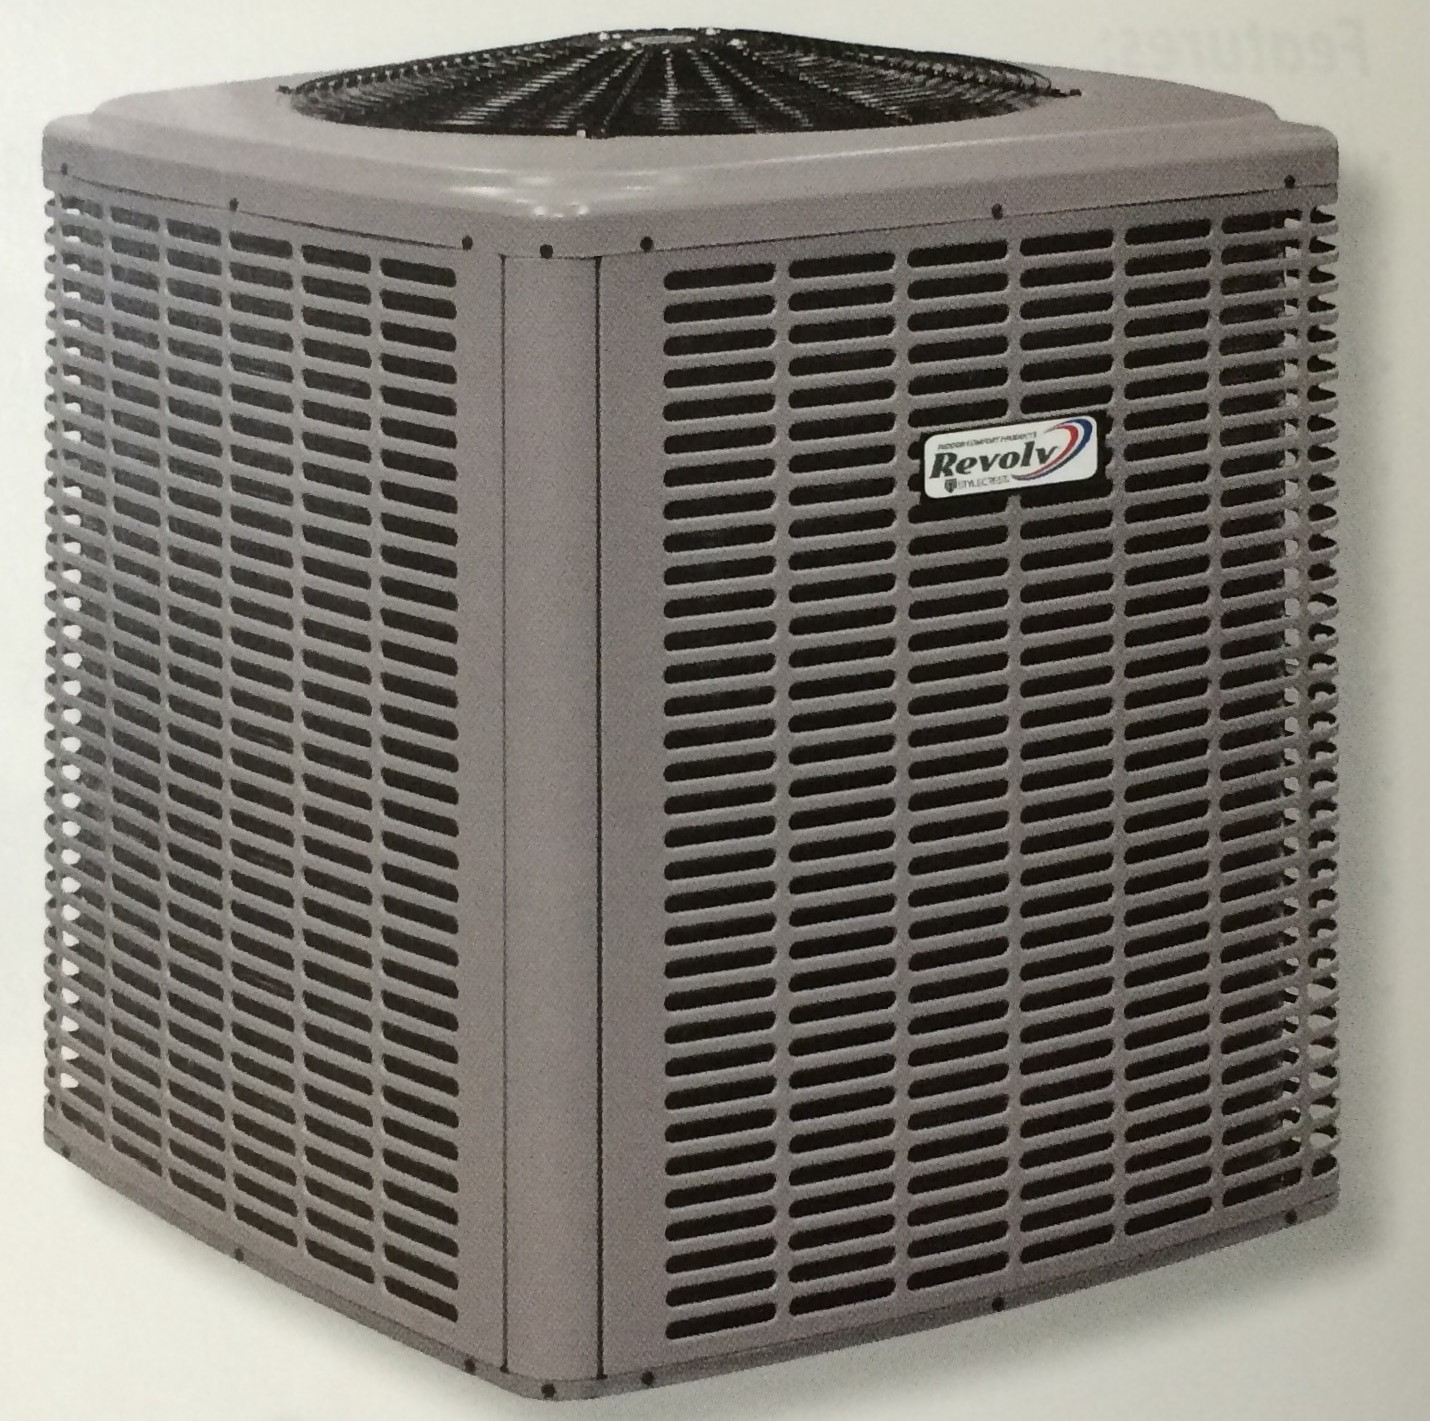 #45505F HEAT PUMP OUTDOOR UNIT Royal Durham Supply Recommended 137 4 Ton Ac System pics with 1430x1421 px on helpvideos.info - Air Conditioners, Air Coolers and more